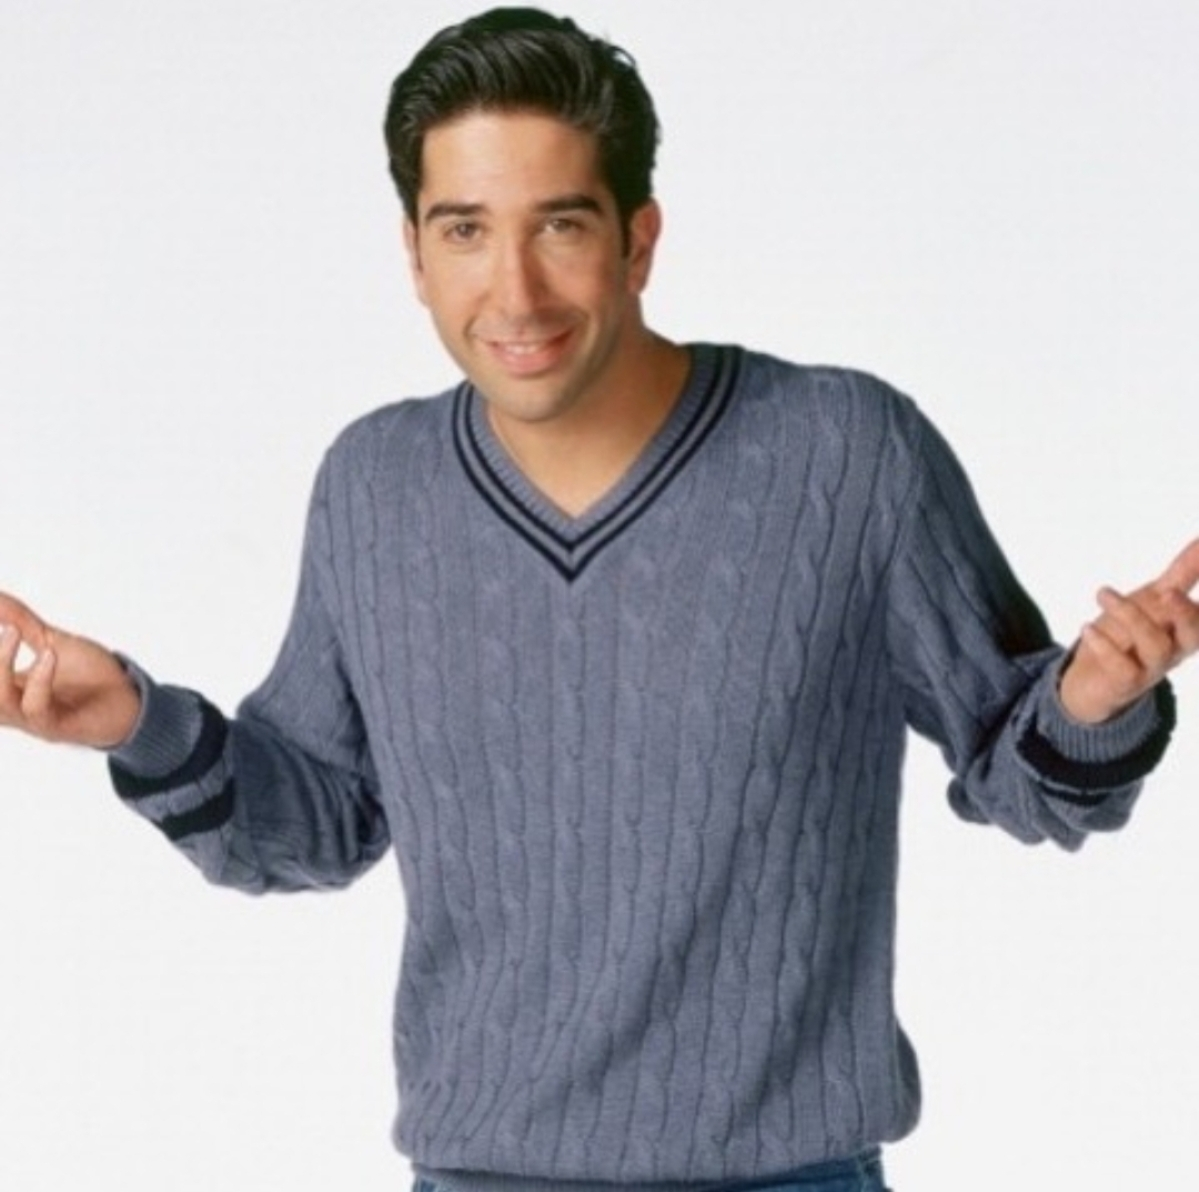 Ross played by David Schwimmer